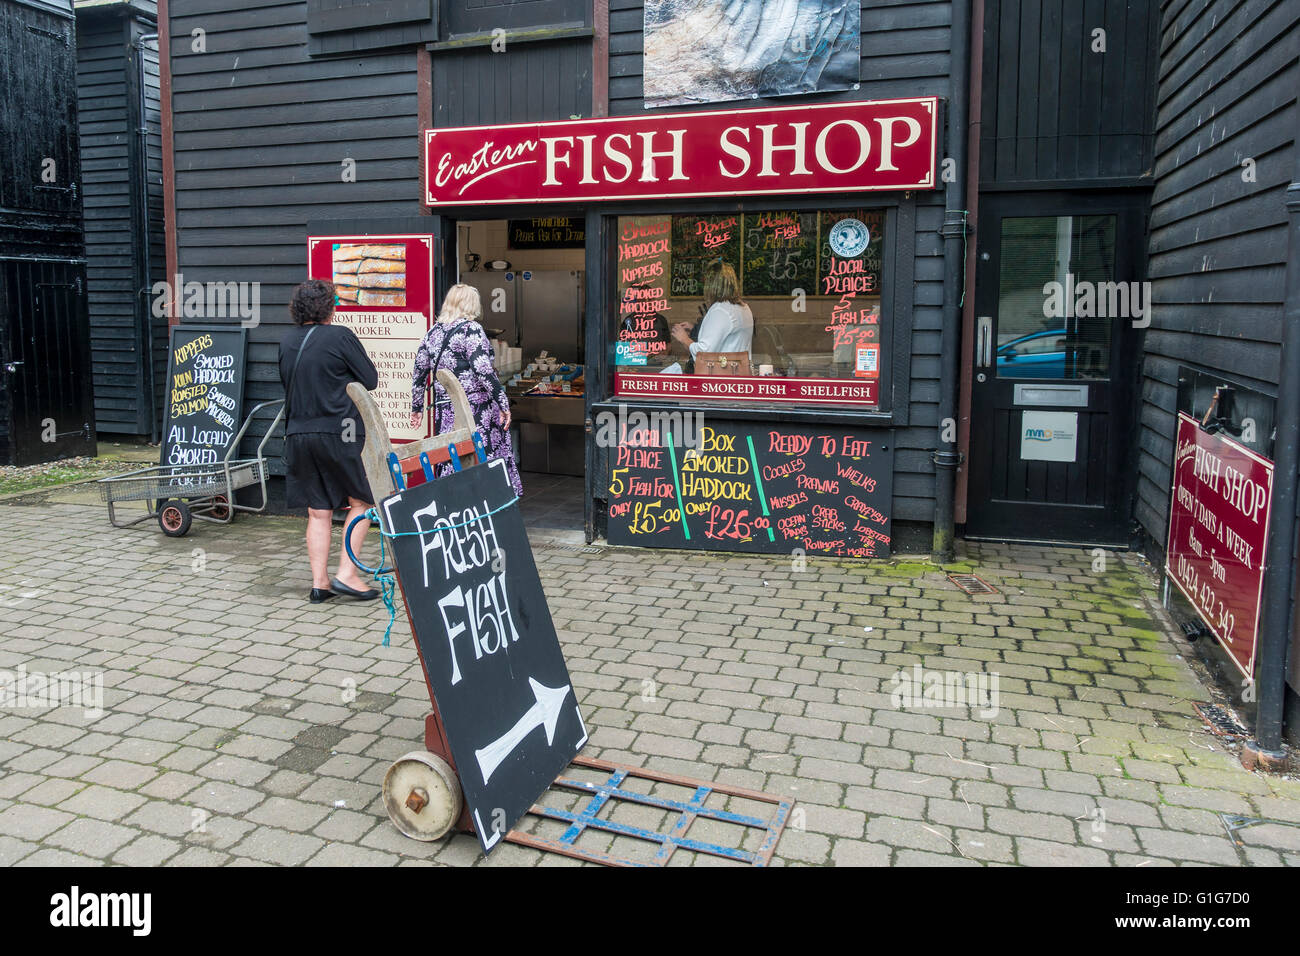 Fresh Fish Shop Hastings Eastern Fish Shop  East Sussex - Stock Image